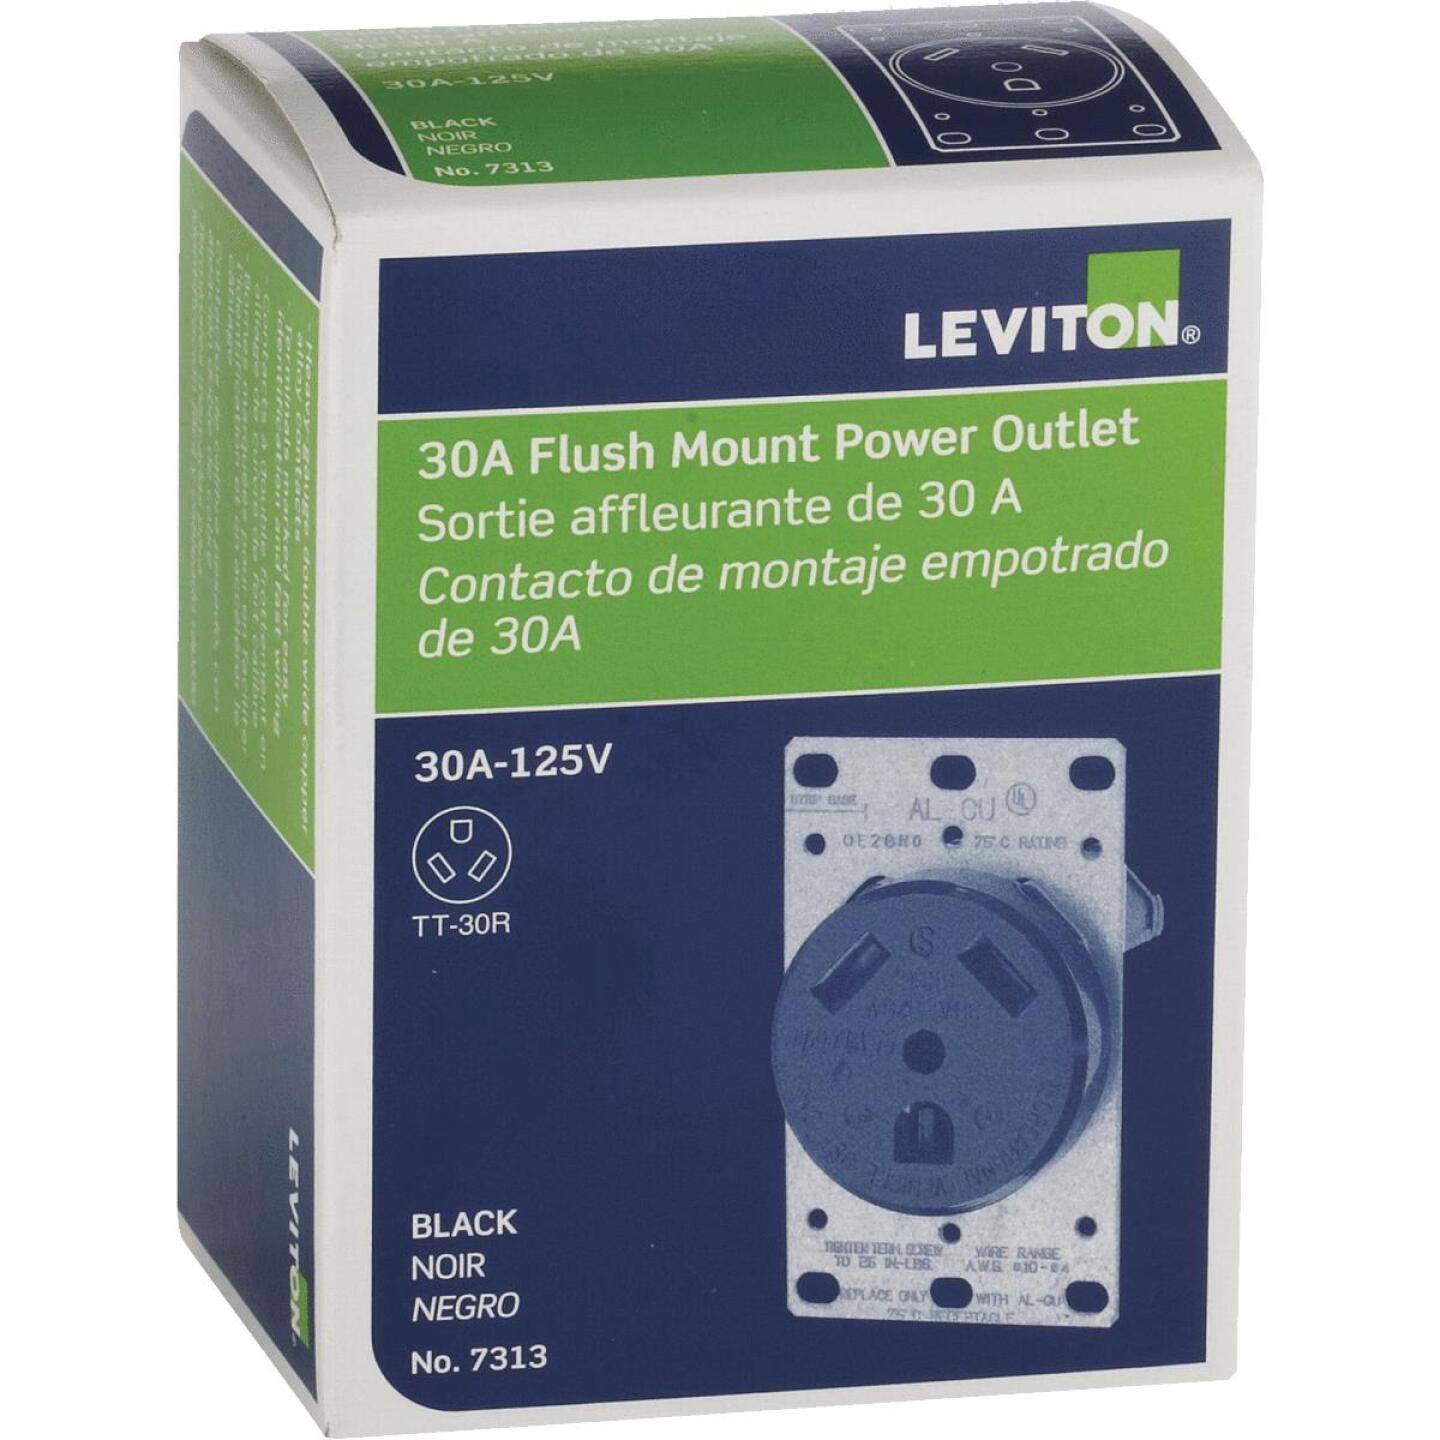 Leviton 30A Female Power Outlet RV Receptacle Image 2